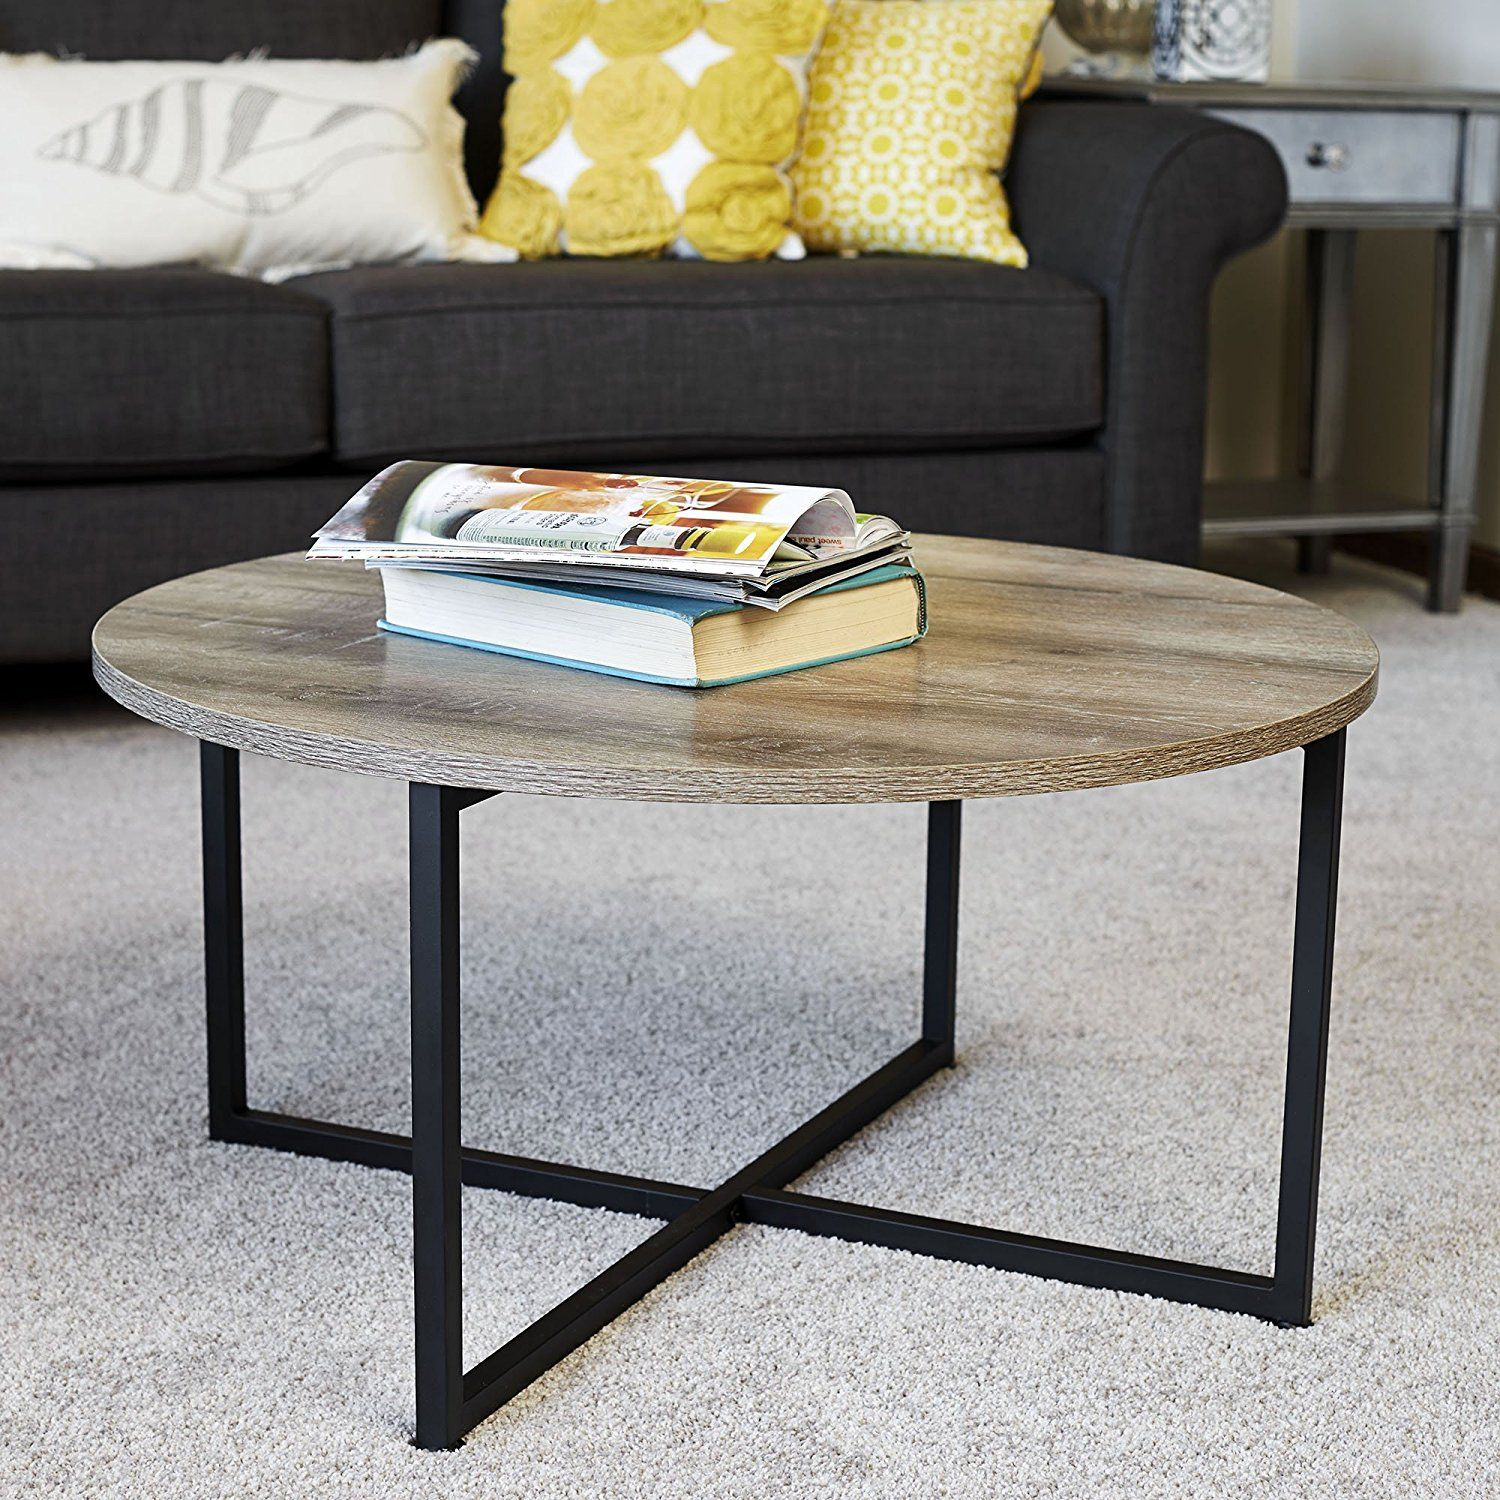 31 Cheap Coffee Tables That Cost Under 100 From Amazon Coffee